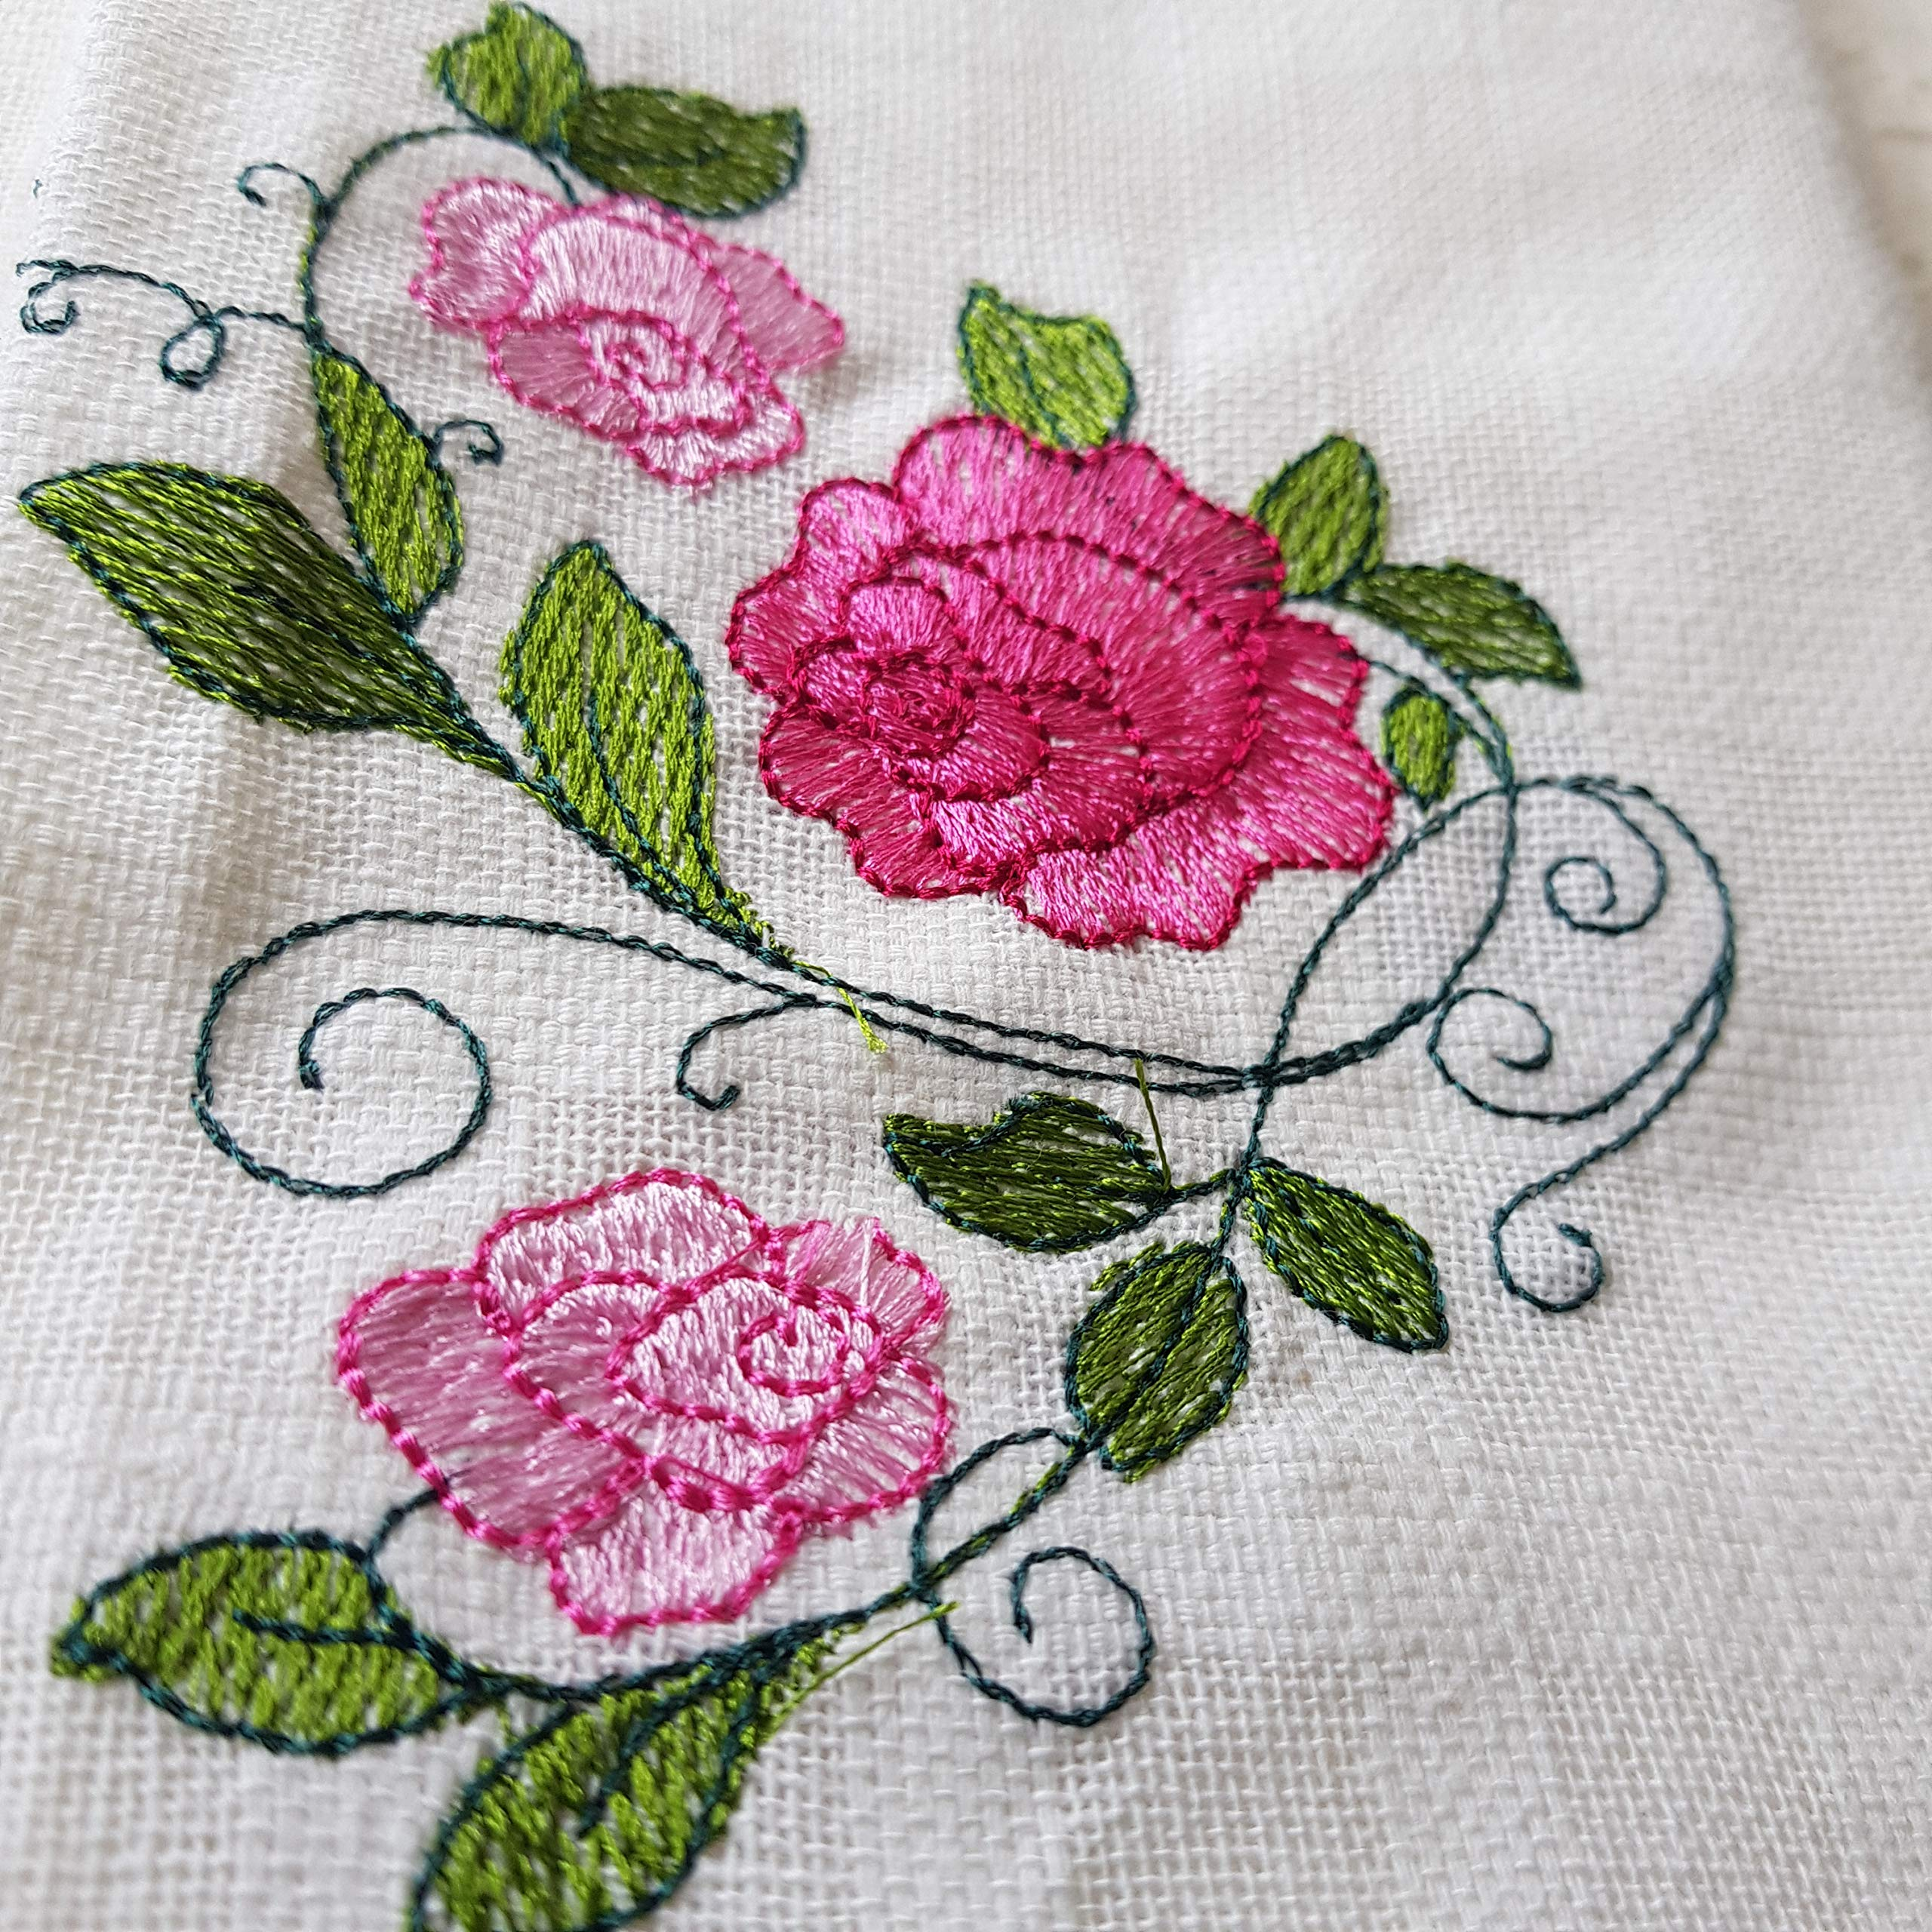 DOWDEGDEE Embroidered Bright Pink Flowers Cotton Hand Towels Guest Hand Towel Fingertip Towel Hanging Wipe - Set of 4